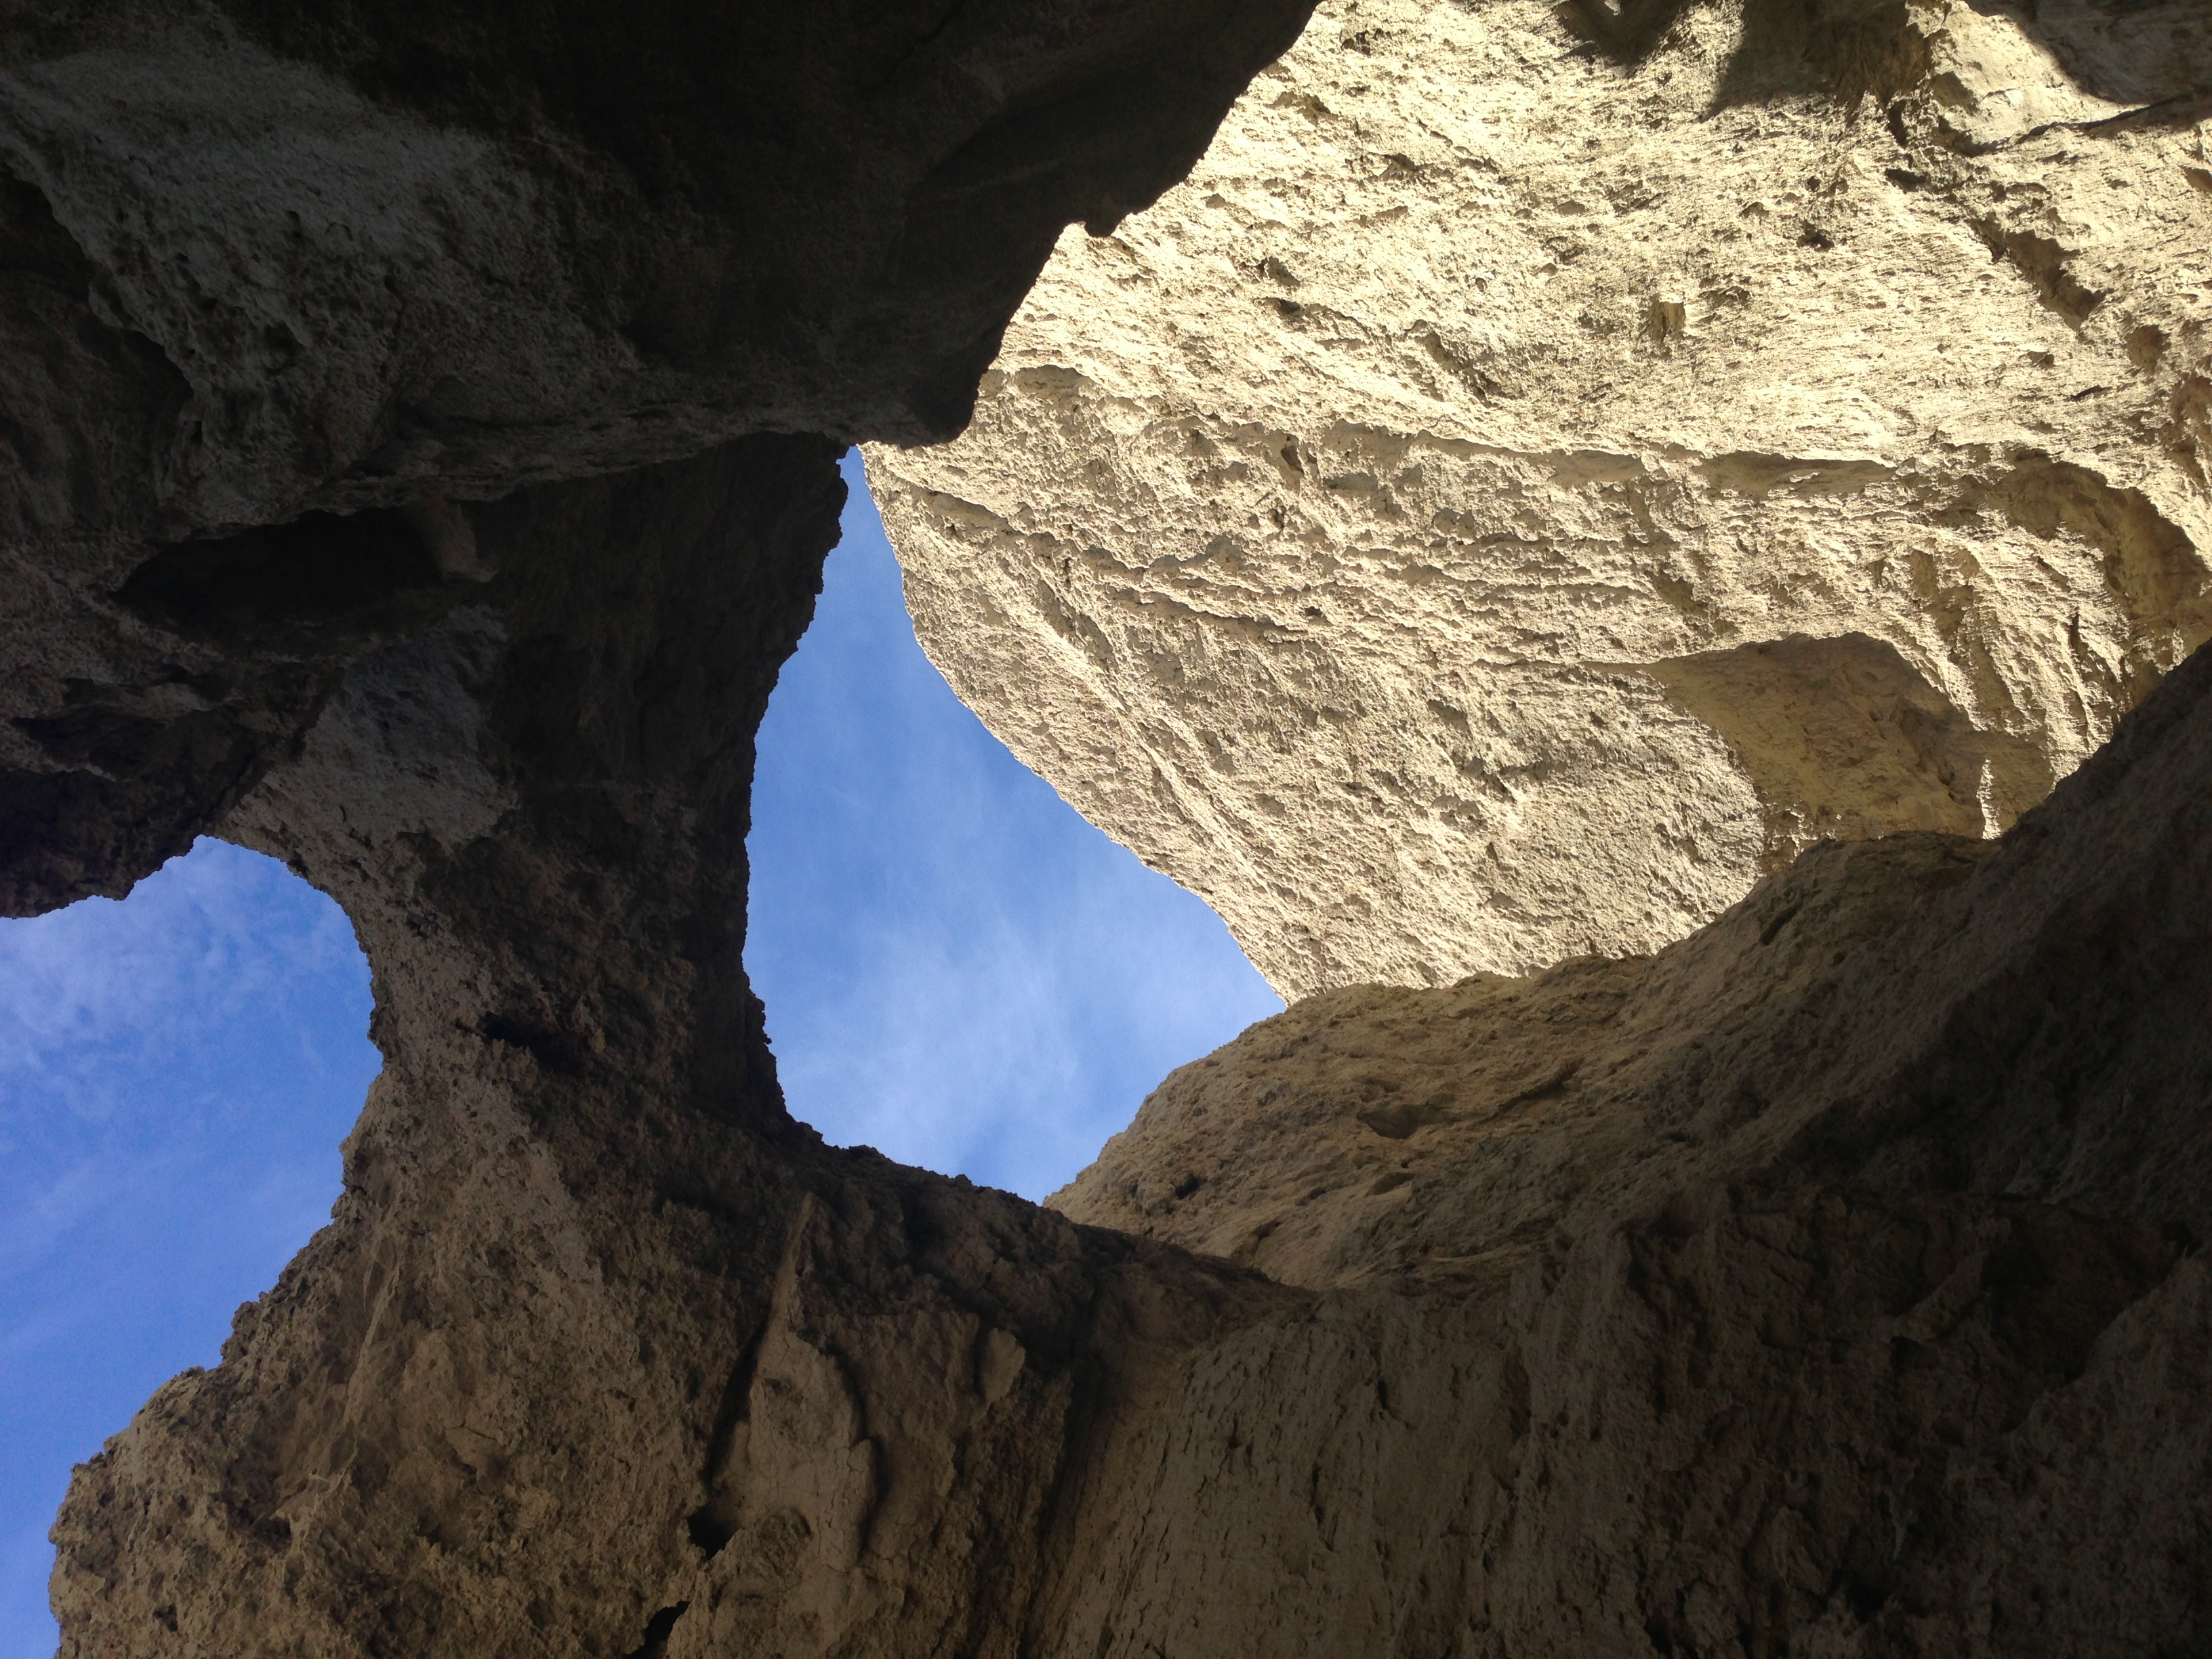 The mud caves of the Arroyo Tapiado have unusual one-of-a-kind terrain.